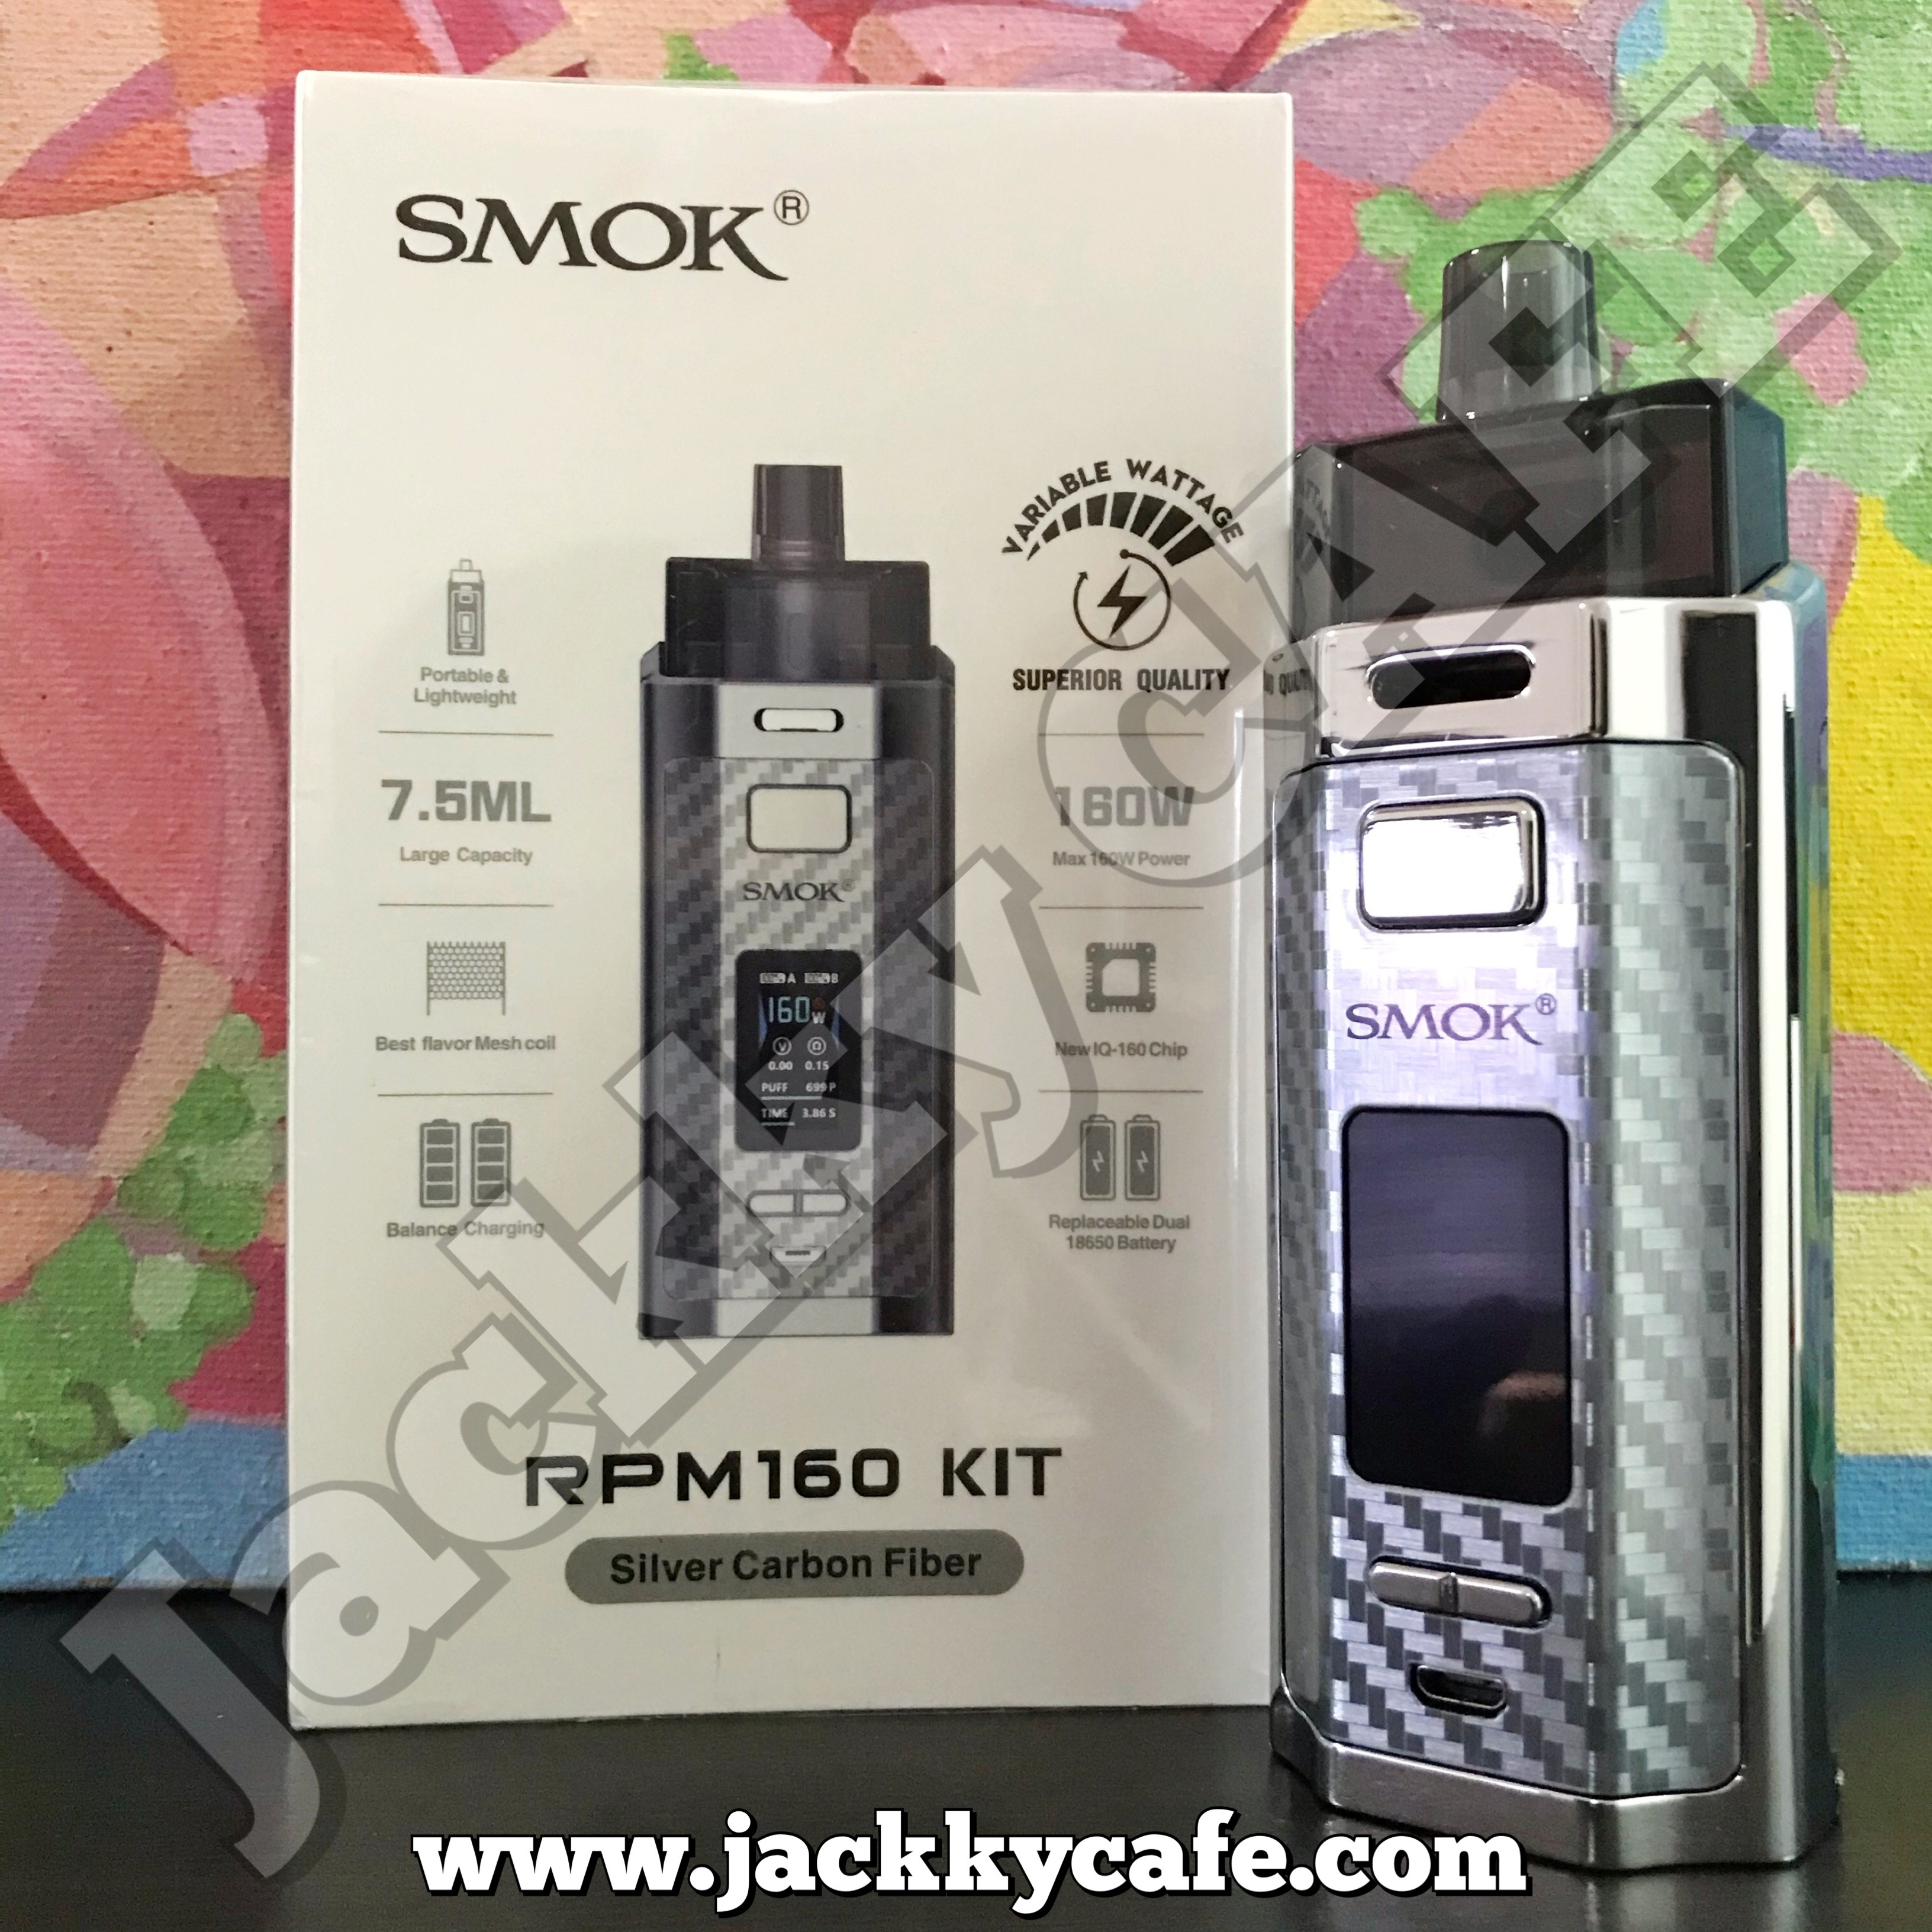 Smok RPM160 kit (Silver Carbon Fiber)